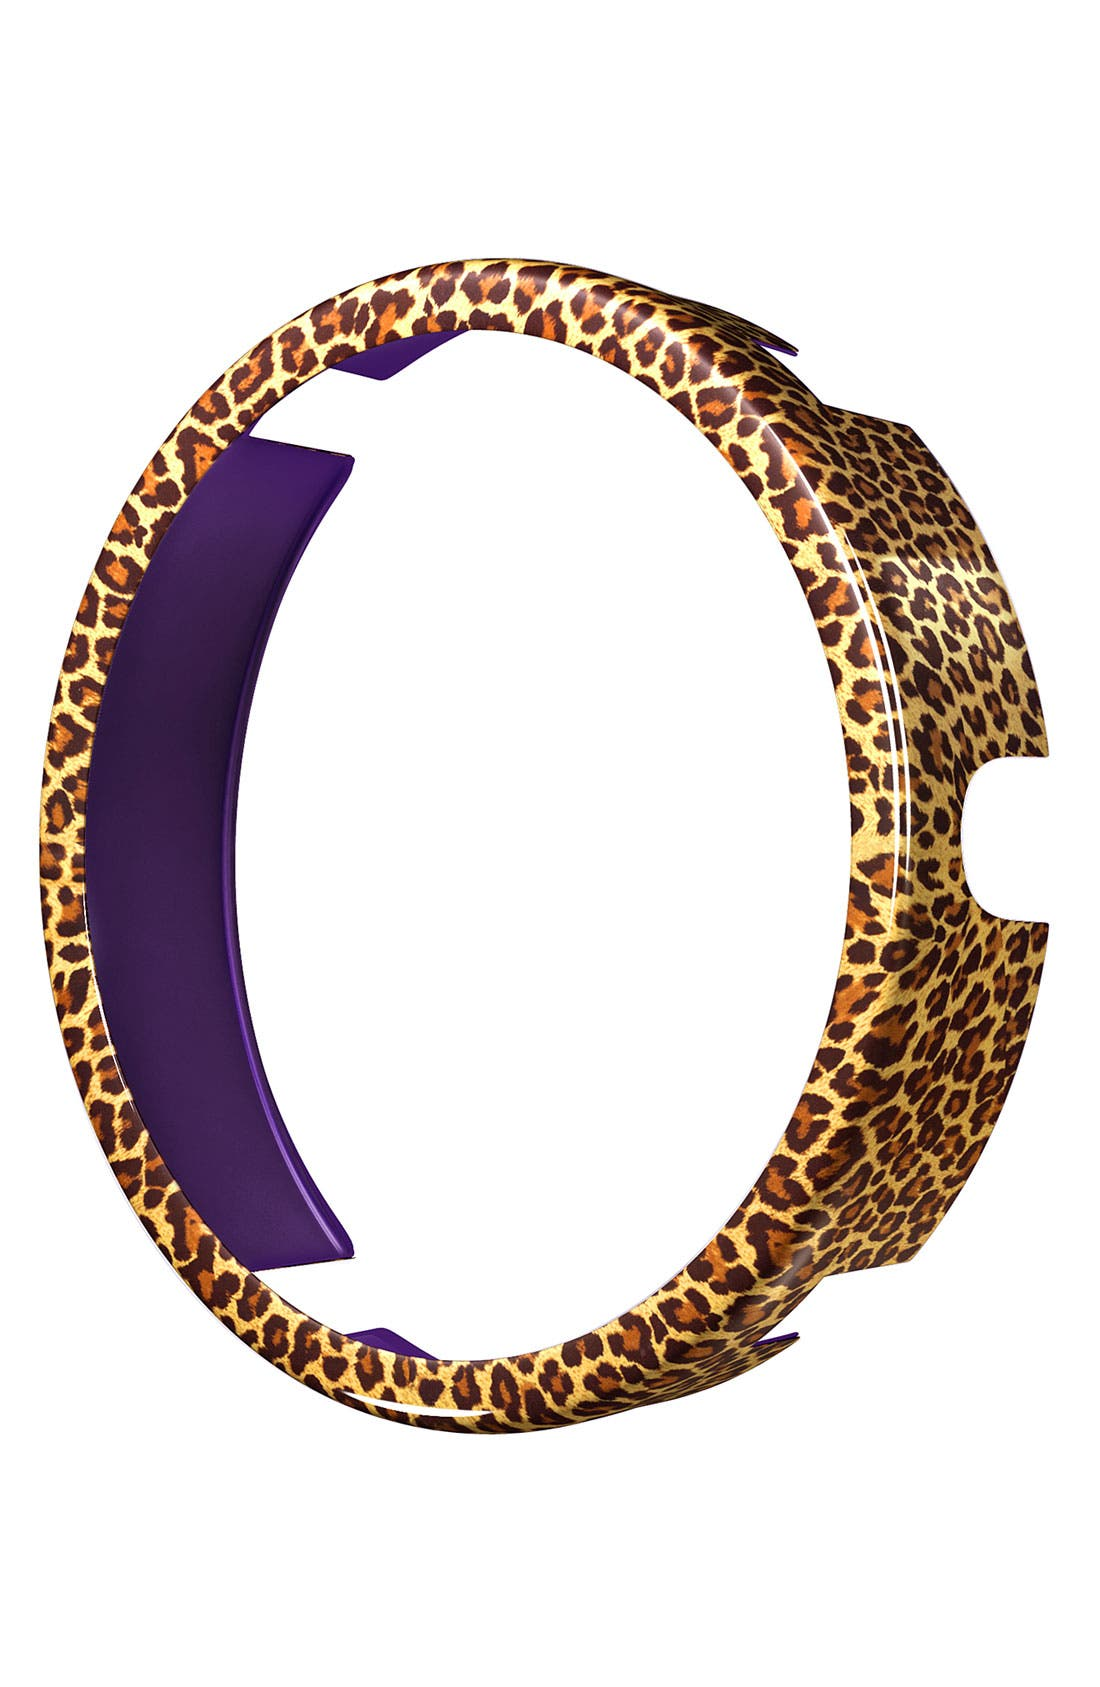 Alternate Image 1 Selected - Movado 'Bold' Animal Print Watch Case Cover